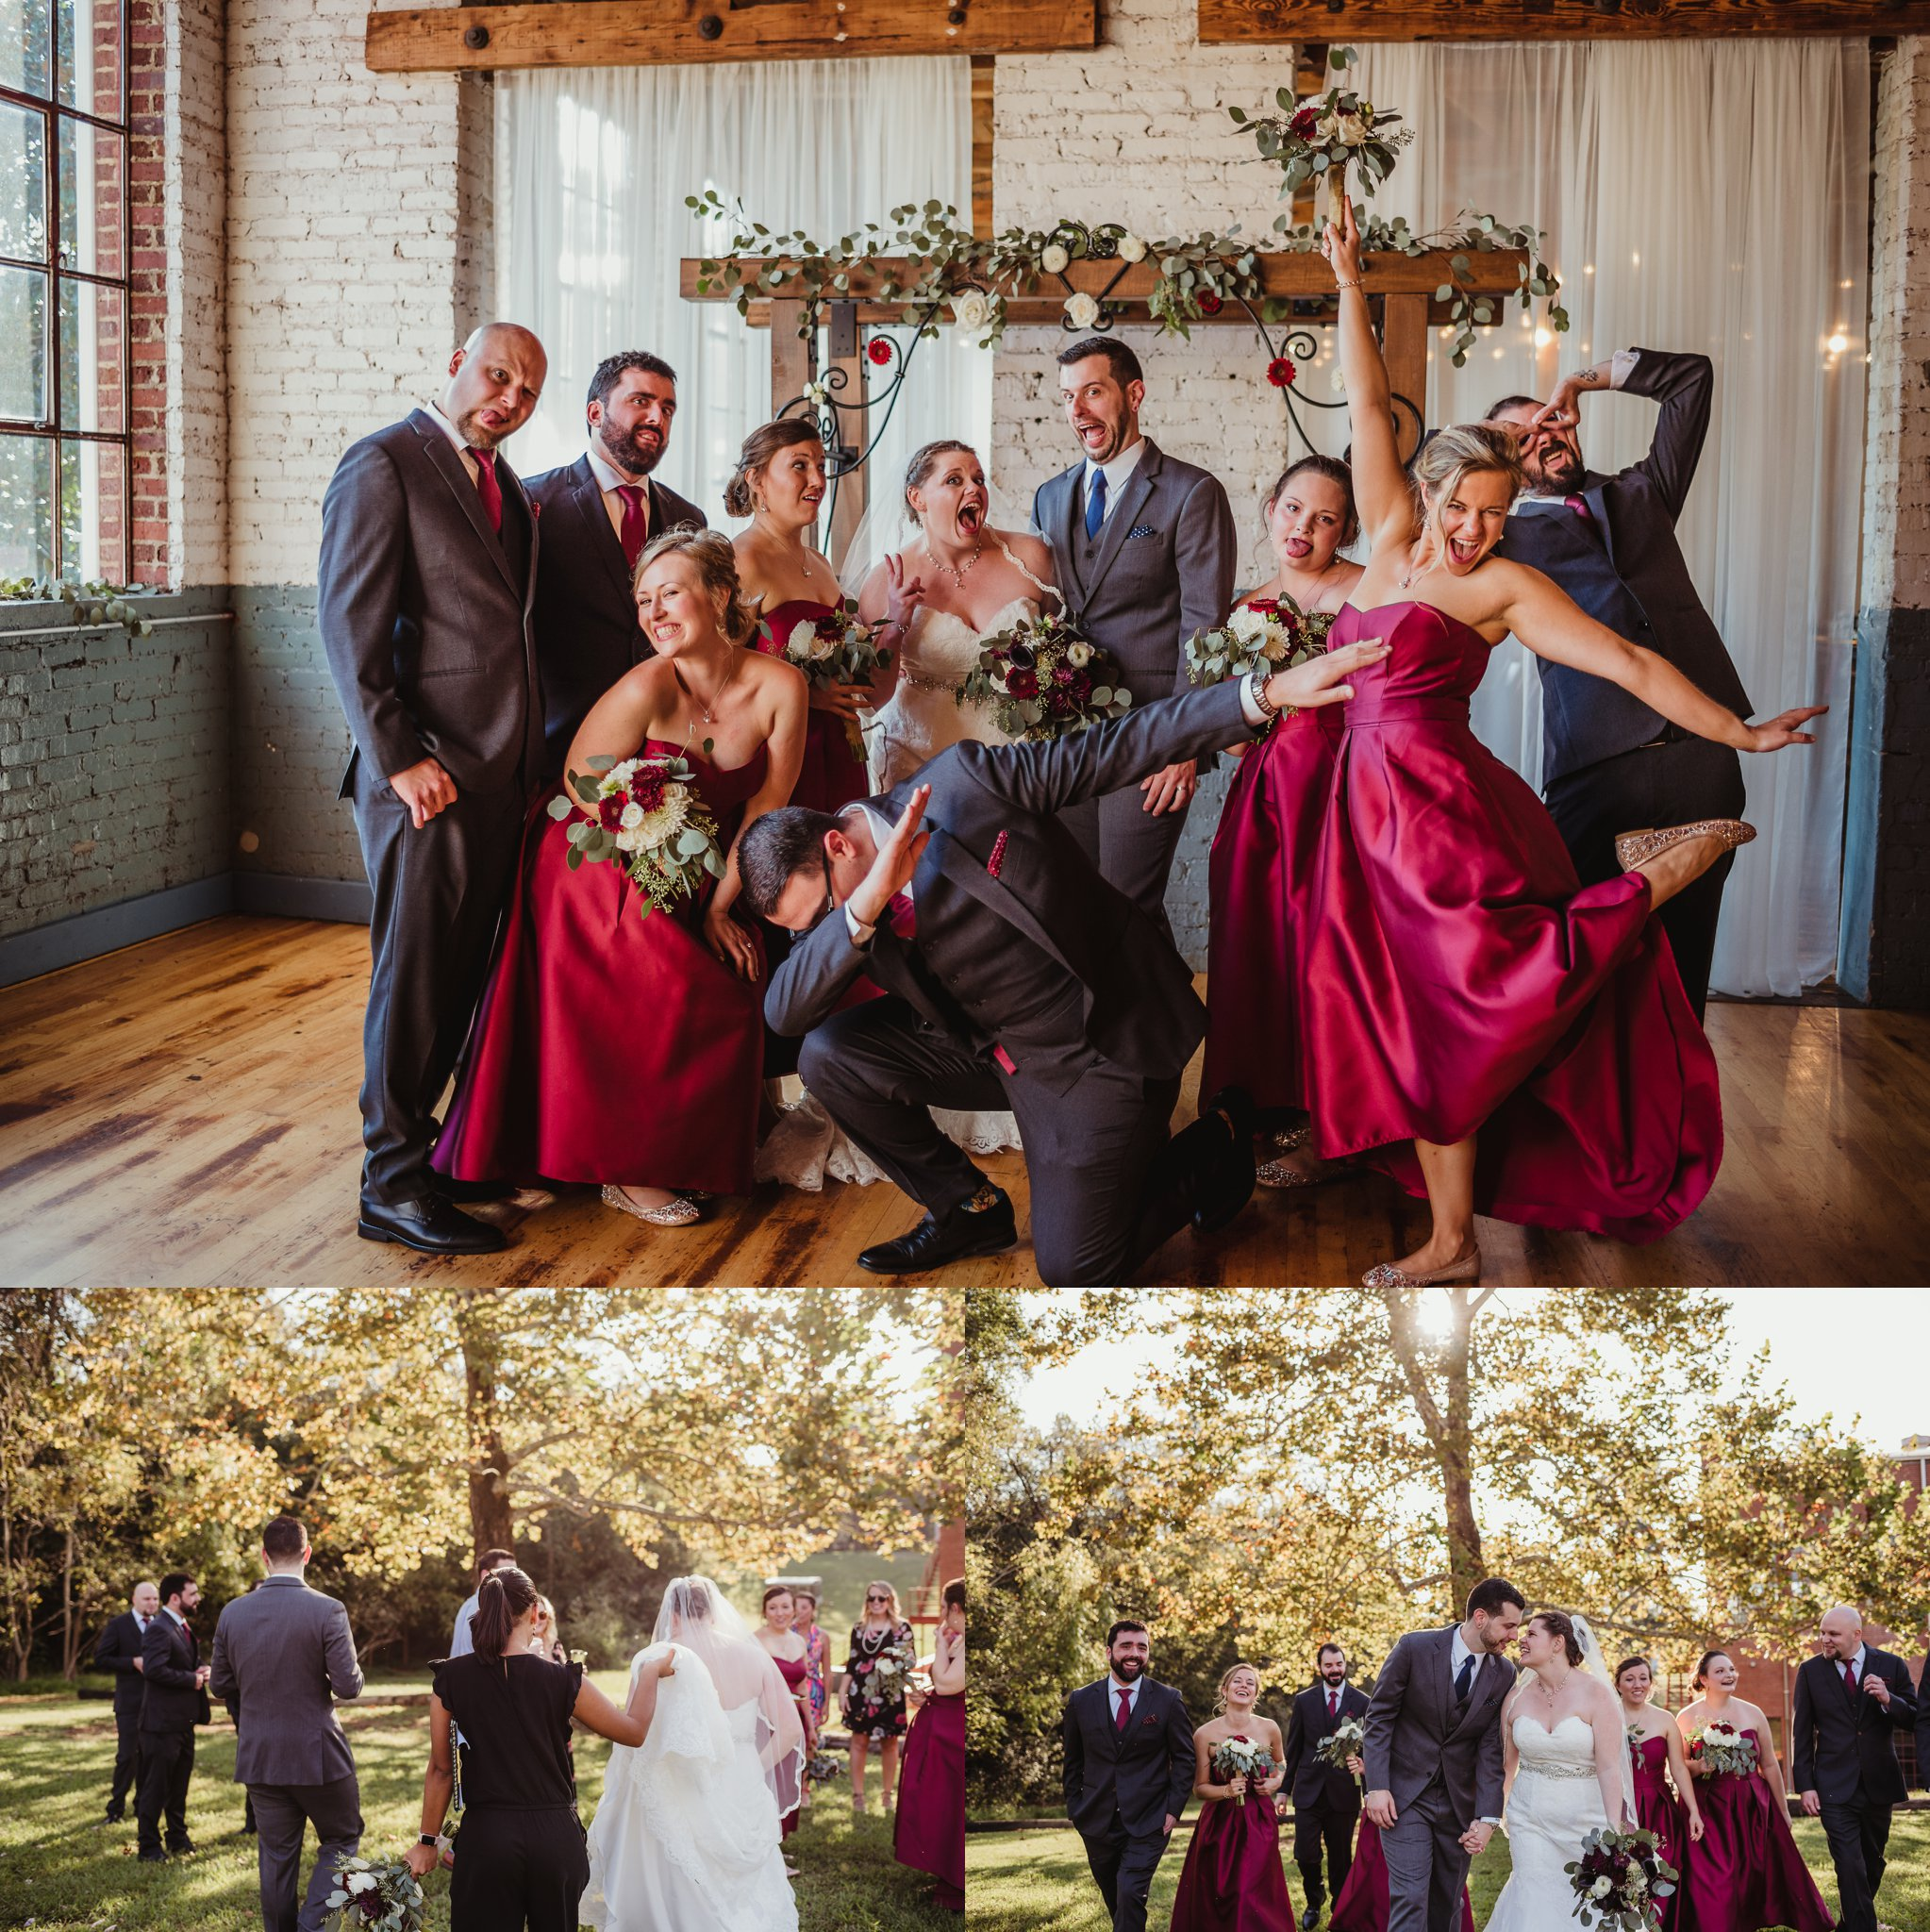 The bride and groom take portraits with their bridal party after their wedding ceremony in Raleigh, North Carolina, pictures by Rose Trail Images.